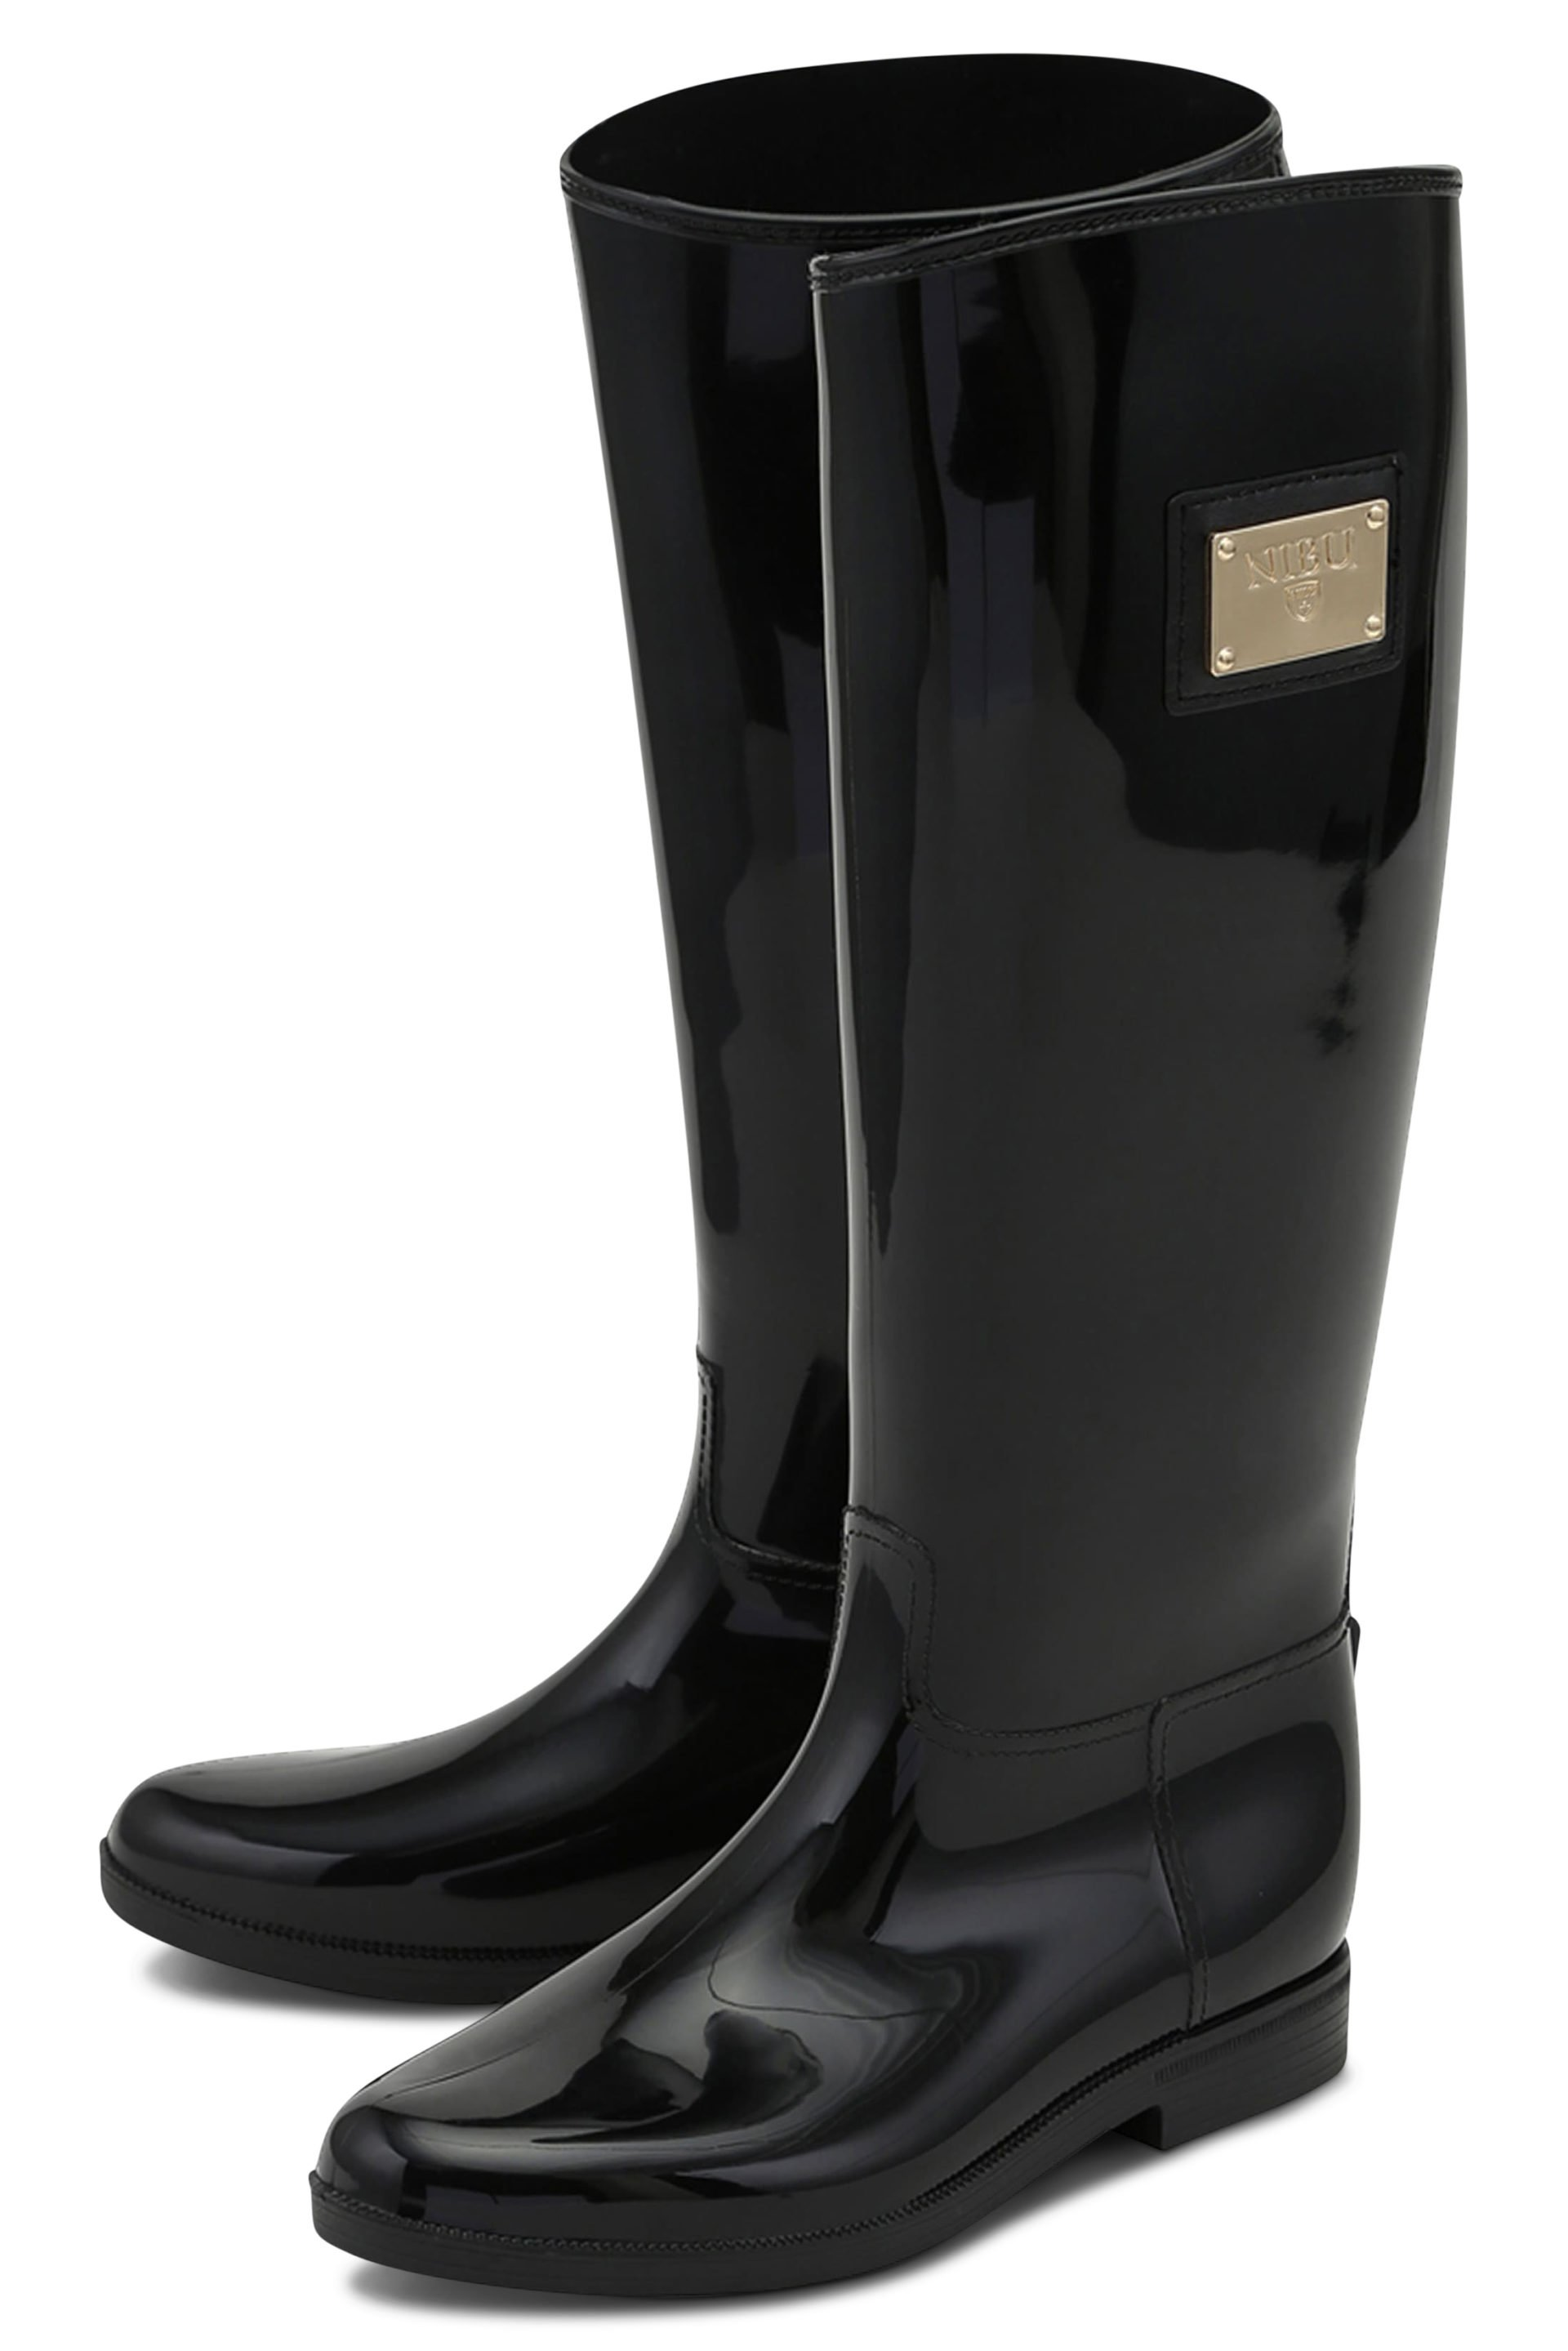 Black hi-shine rainboots with gold-colour logo